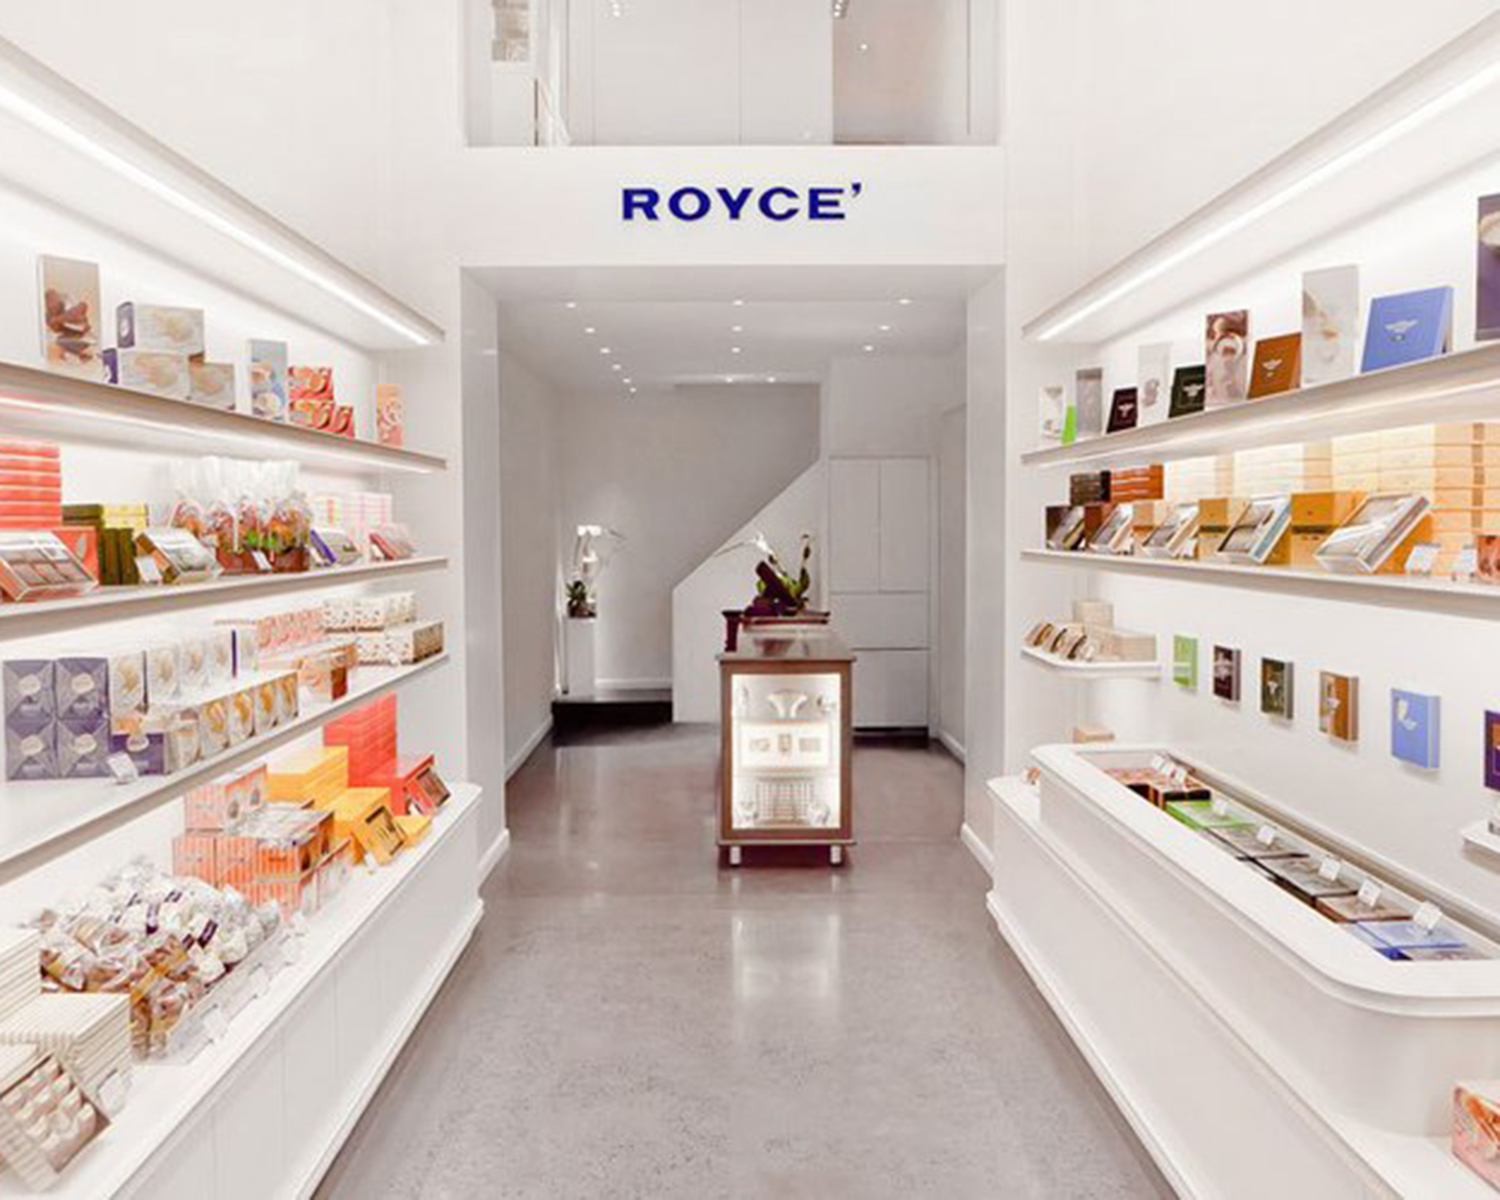 ROYCE' Chocolates